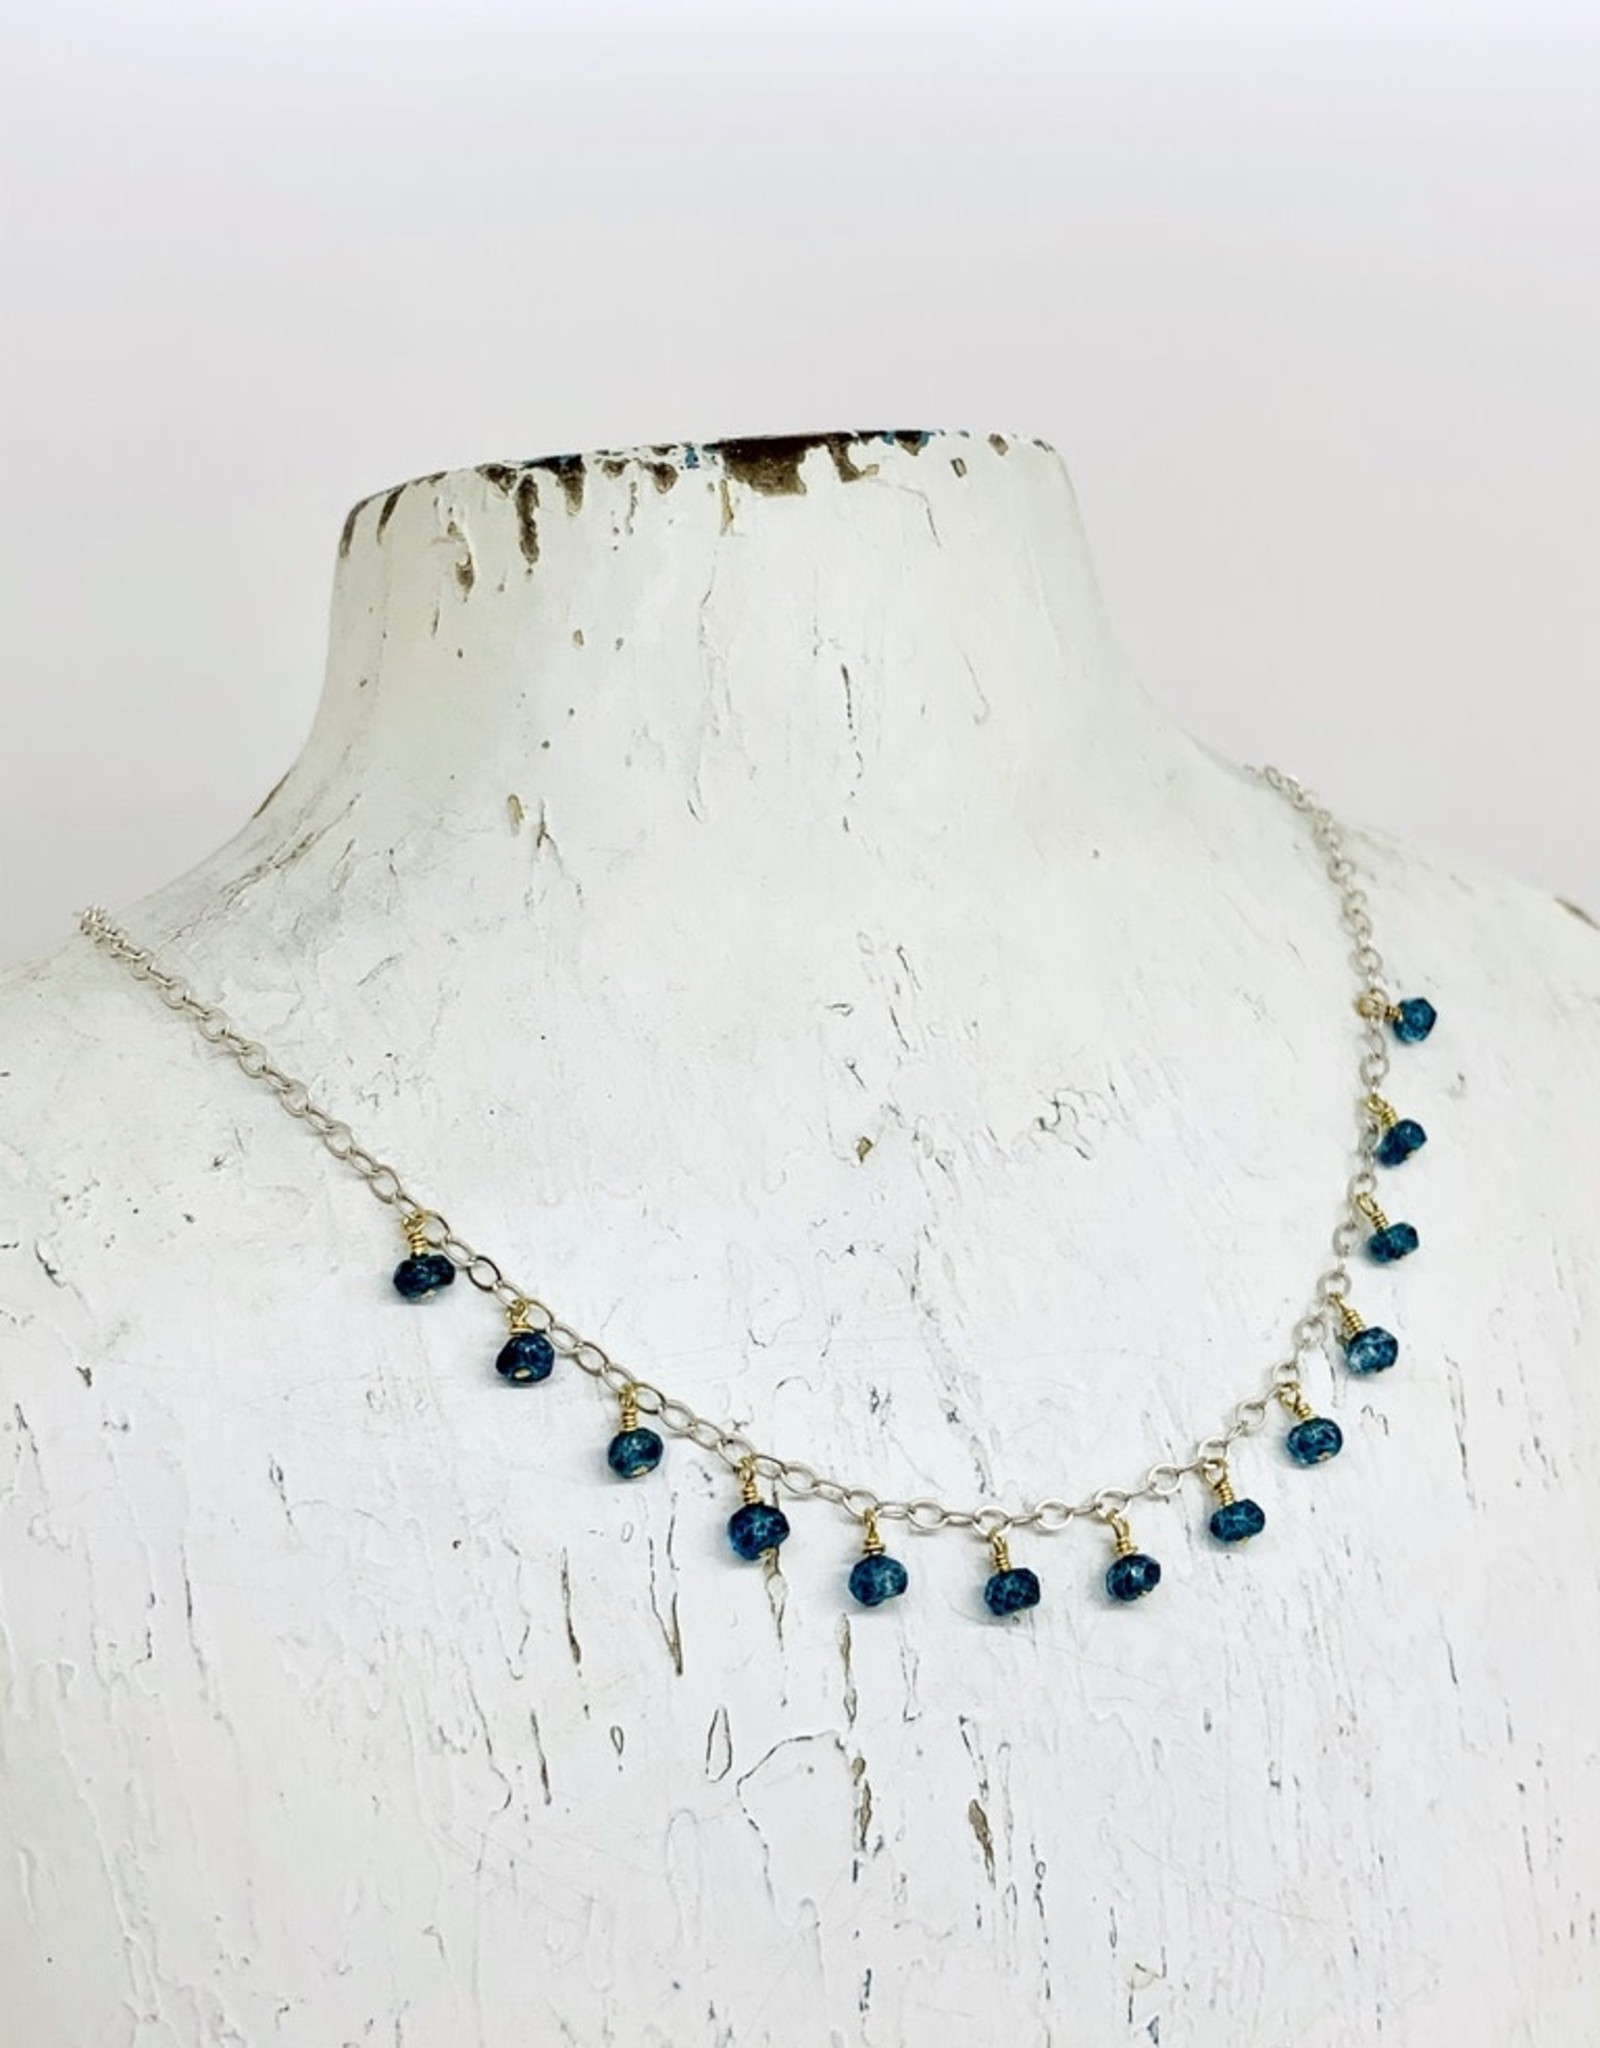 Handmade Silver Necklace with 13 london blue topaz rondelles on 14 k g.f. headpins, silver chain